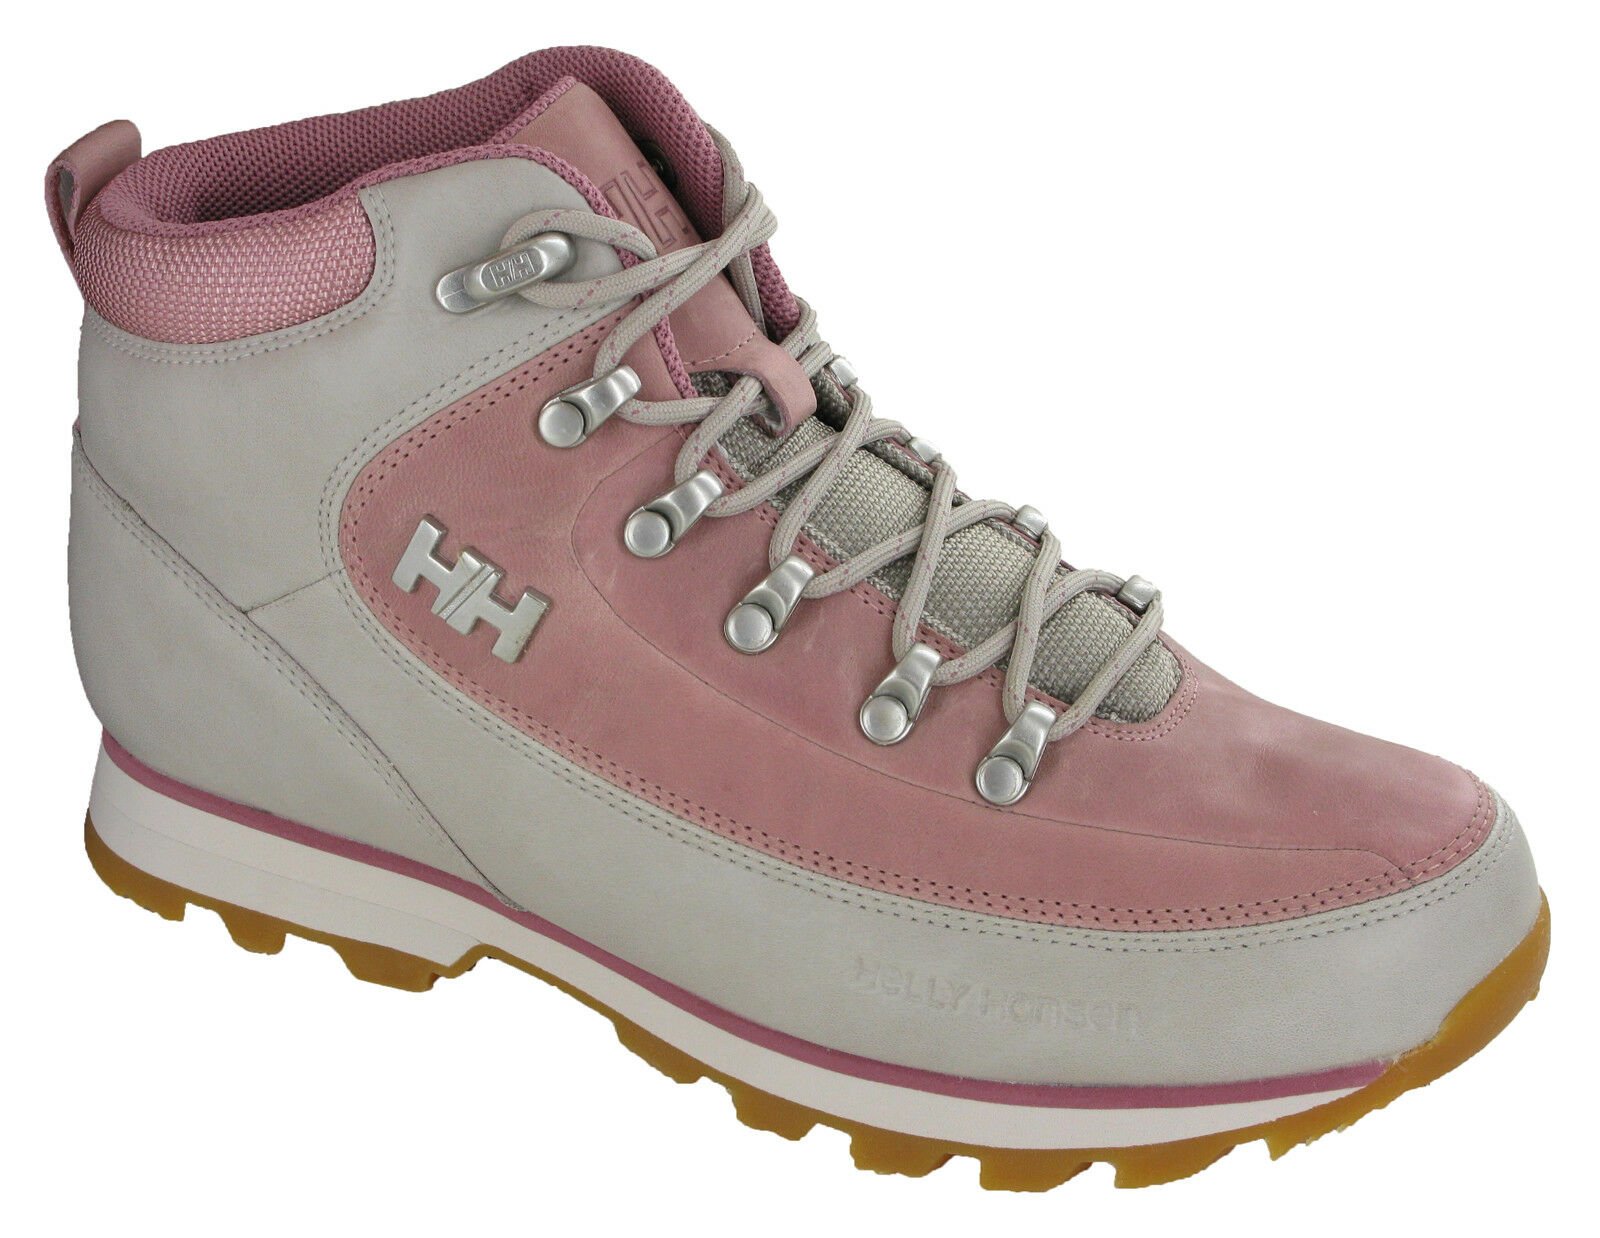 0ba38c83d2a Helly Hansen Womens Boots Forester Winter Ankle Walking Water ...